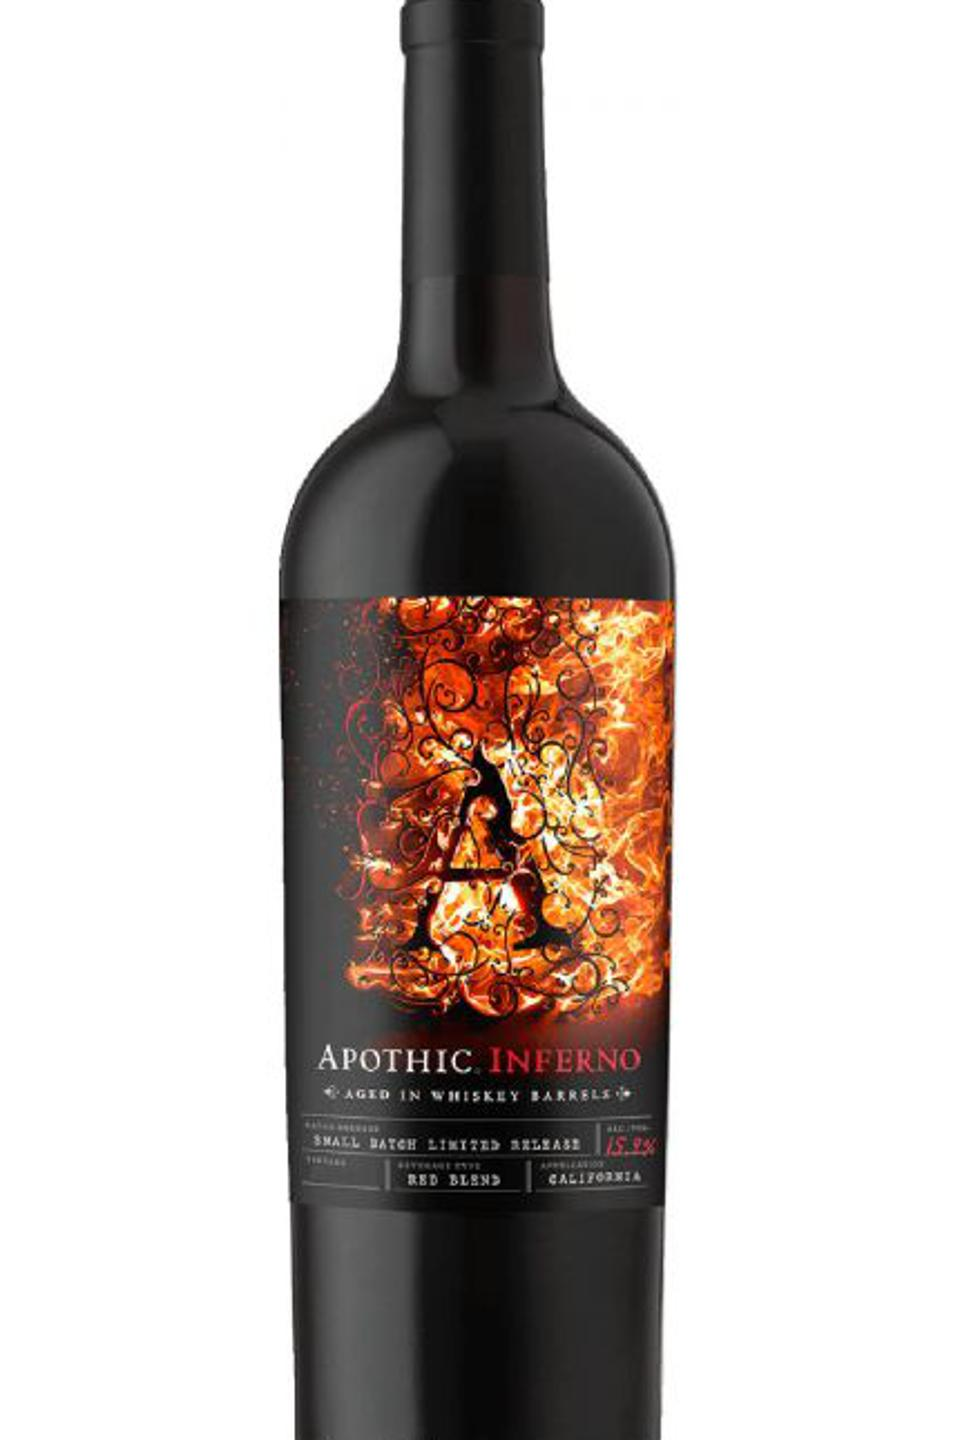 Apothic's Inferno red blend is a spirit-aged wine.